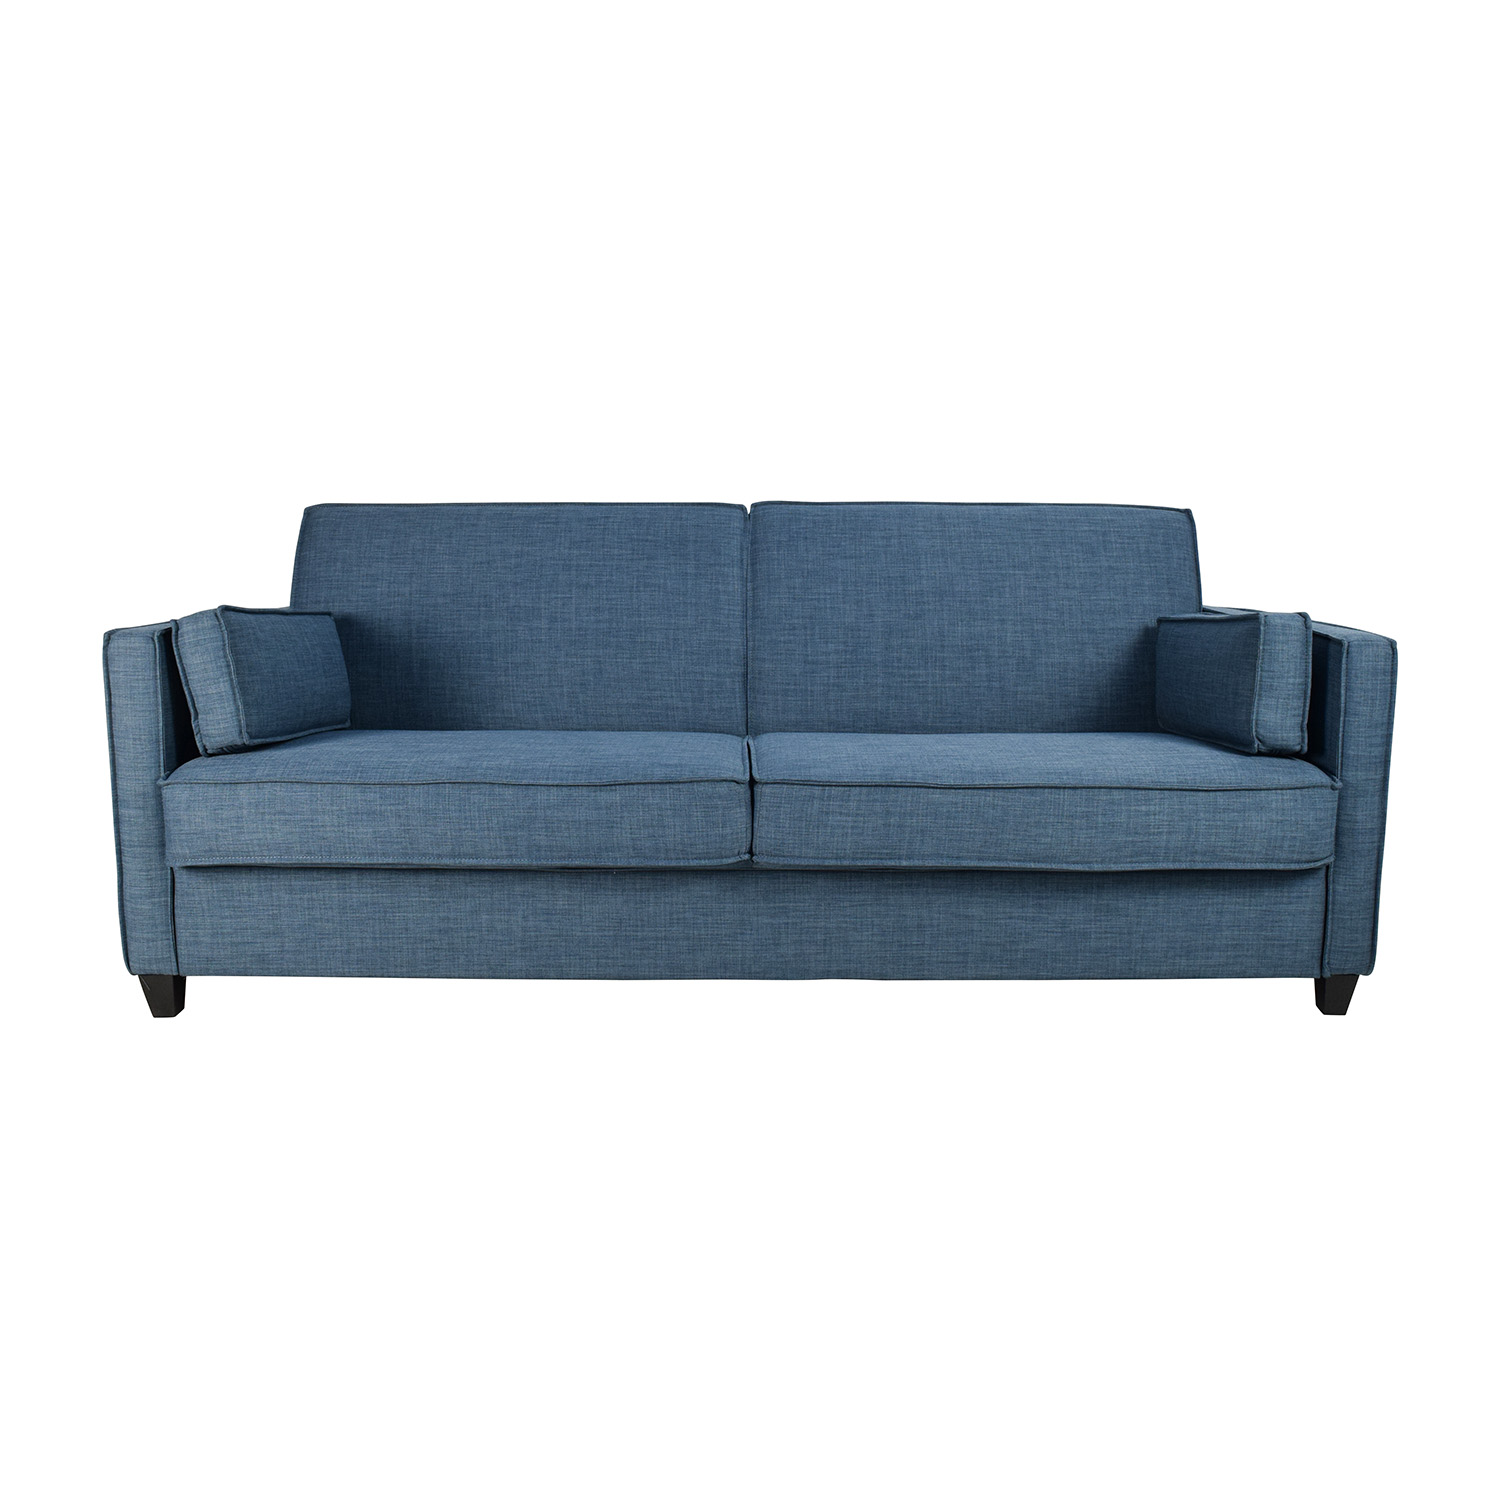 Blue Full Size Convertible Storage Futon discount